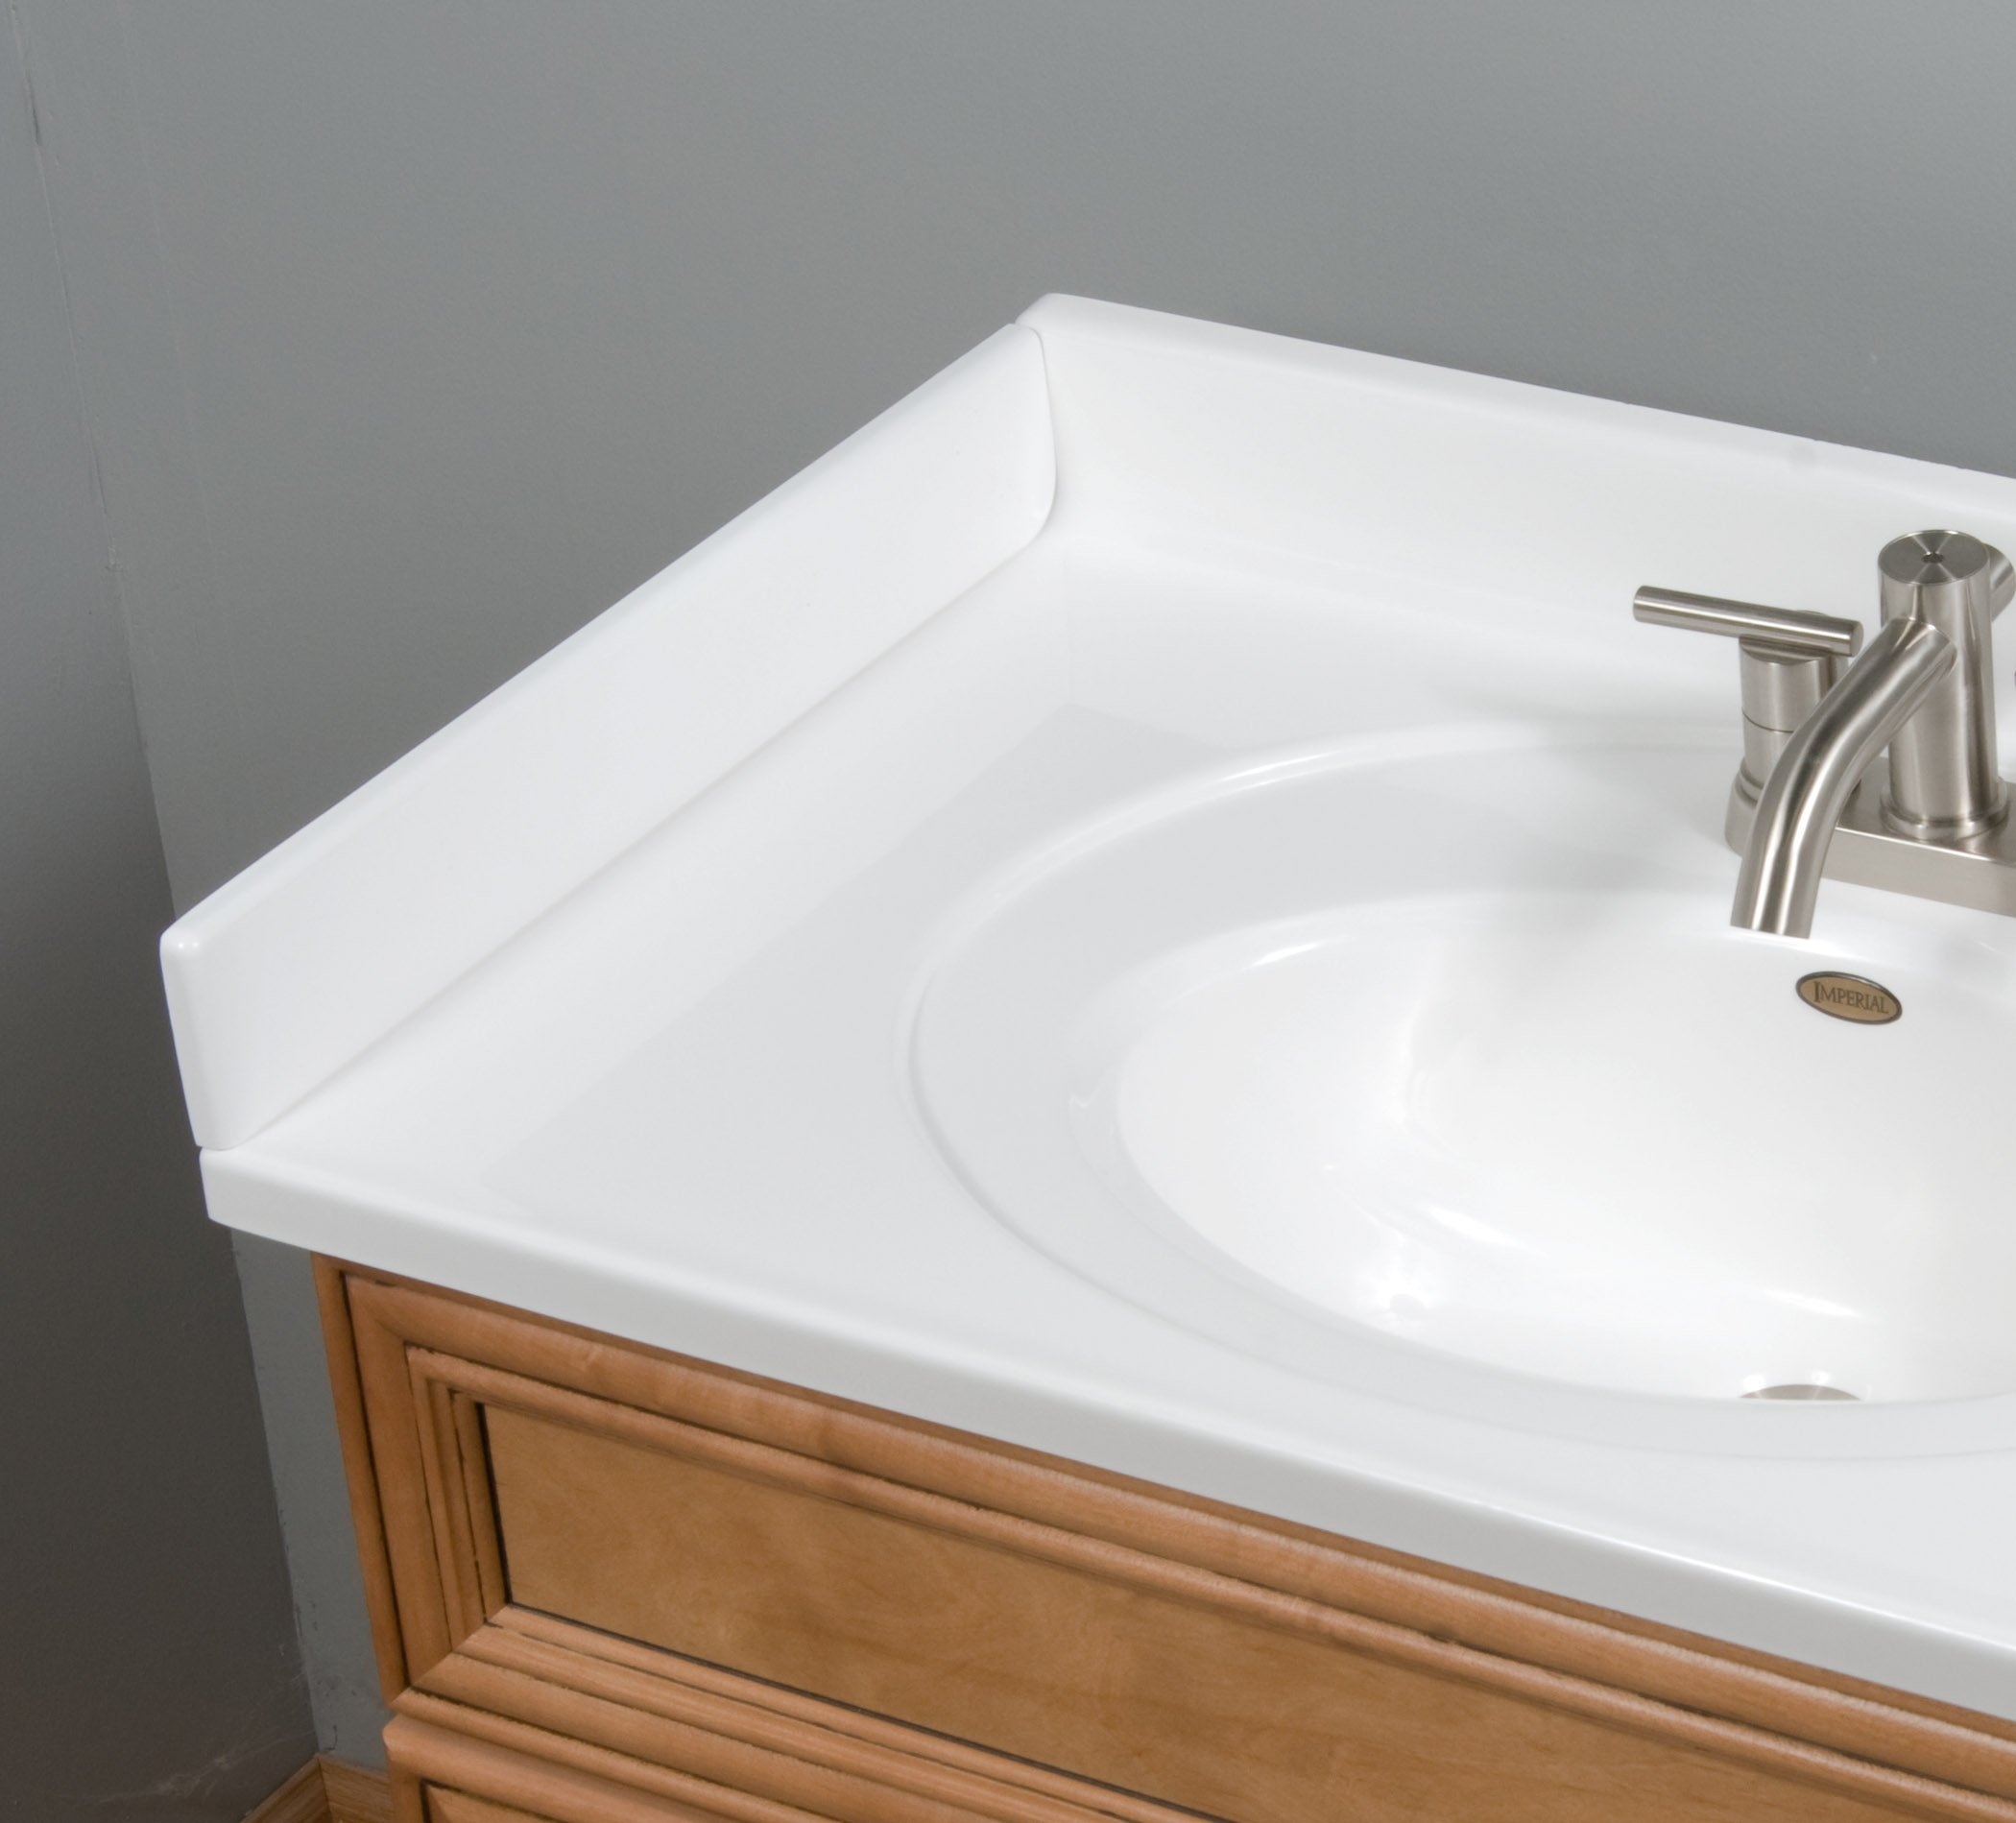 Imperial VL101SPW Left Hand Side Splash for Bathroom Vanity Top, Solid White Gloss Finish, 19-Inch by Imperial Marble (Image #2)